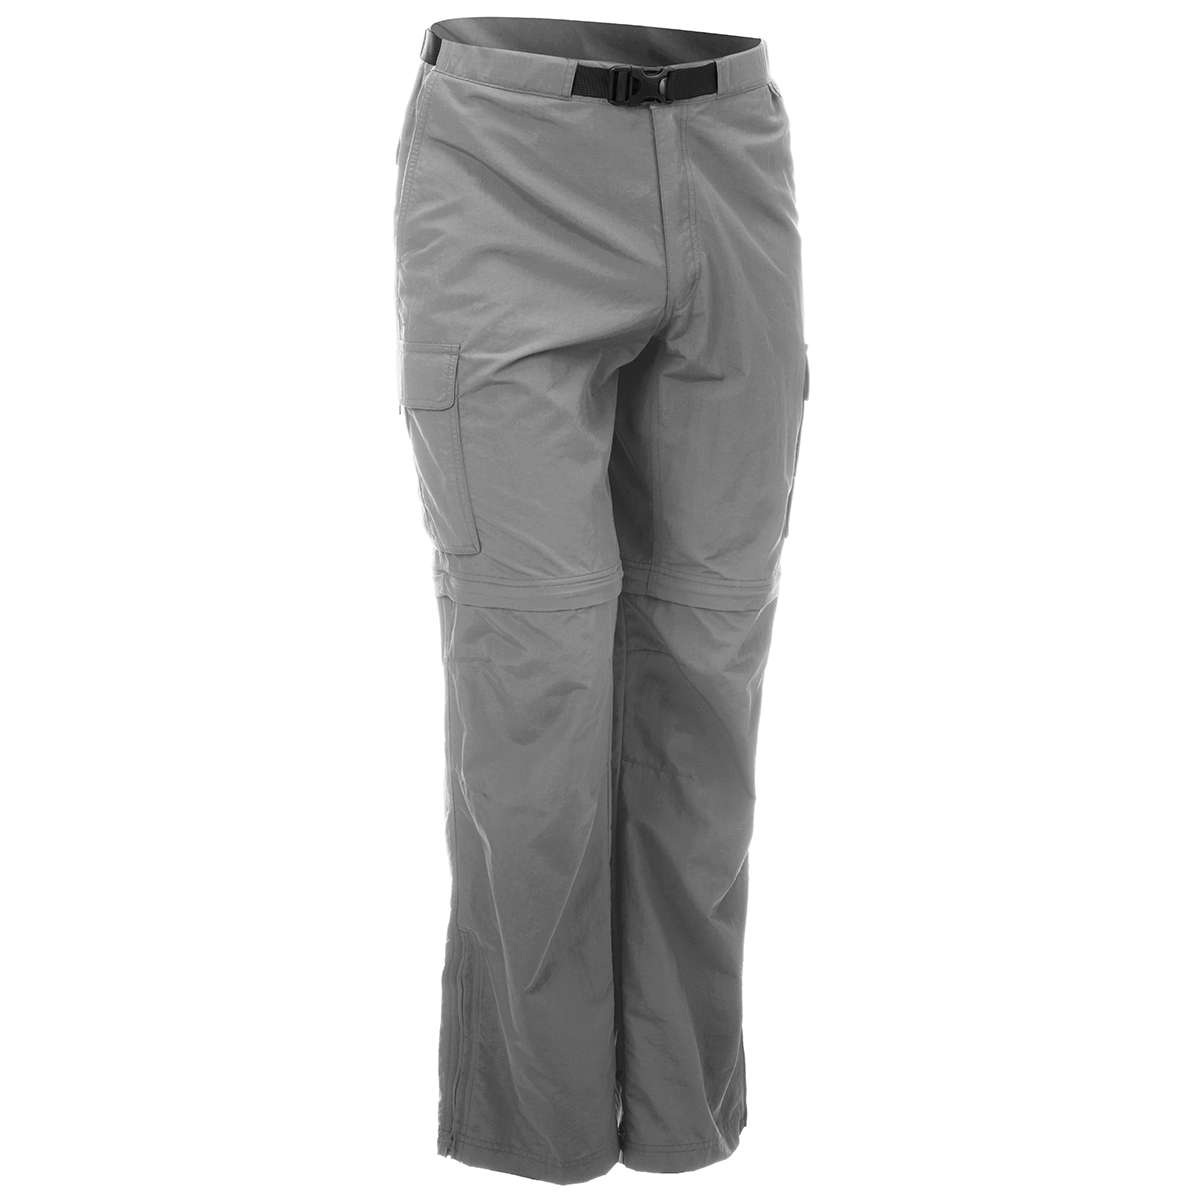 Ems Men's Camp Cargo Zip-Off Pants - White, 38/32